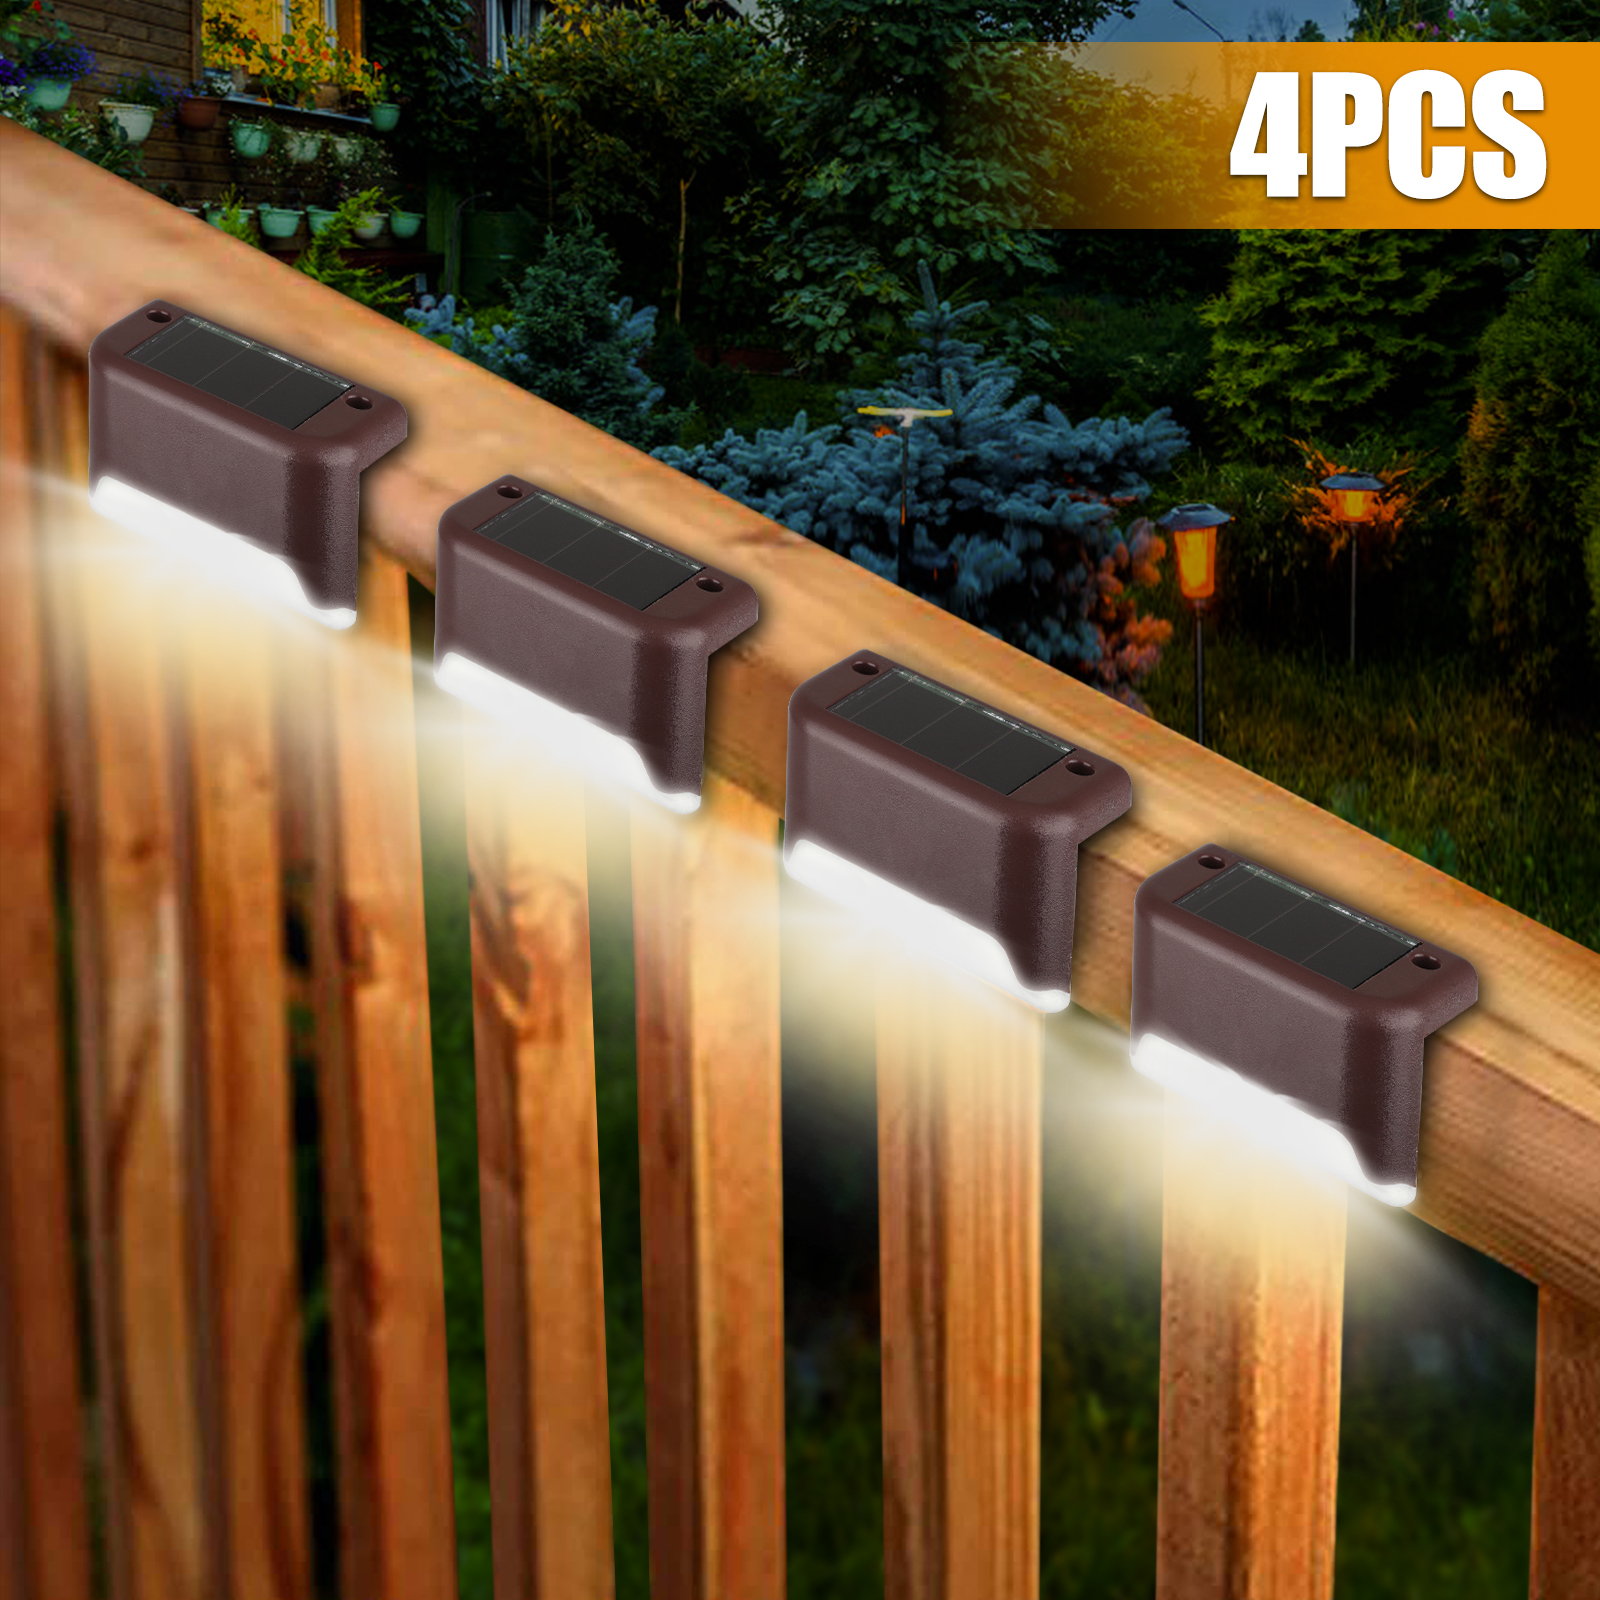 12 Solar Powered LED Garden Outdoor Fence Lights Wall Patio Decking Lighting